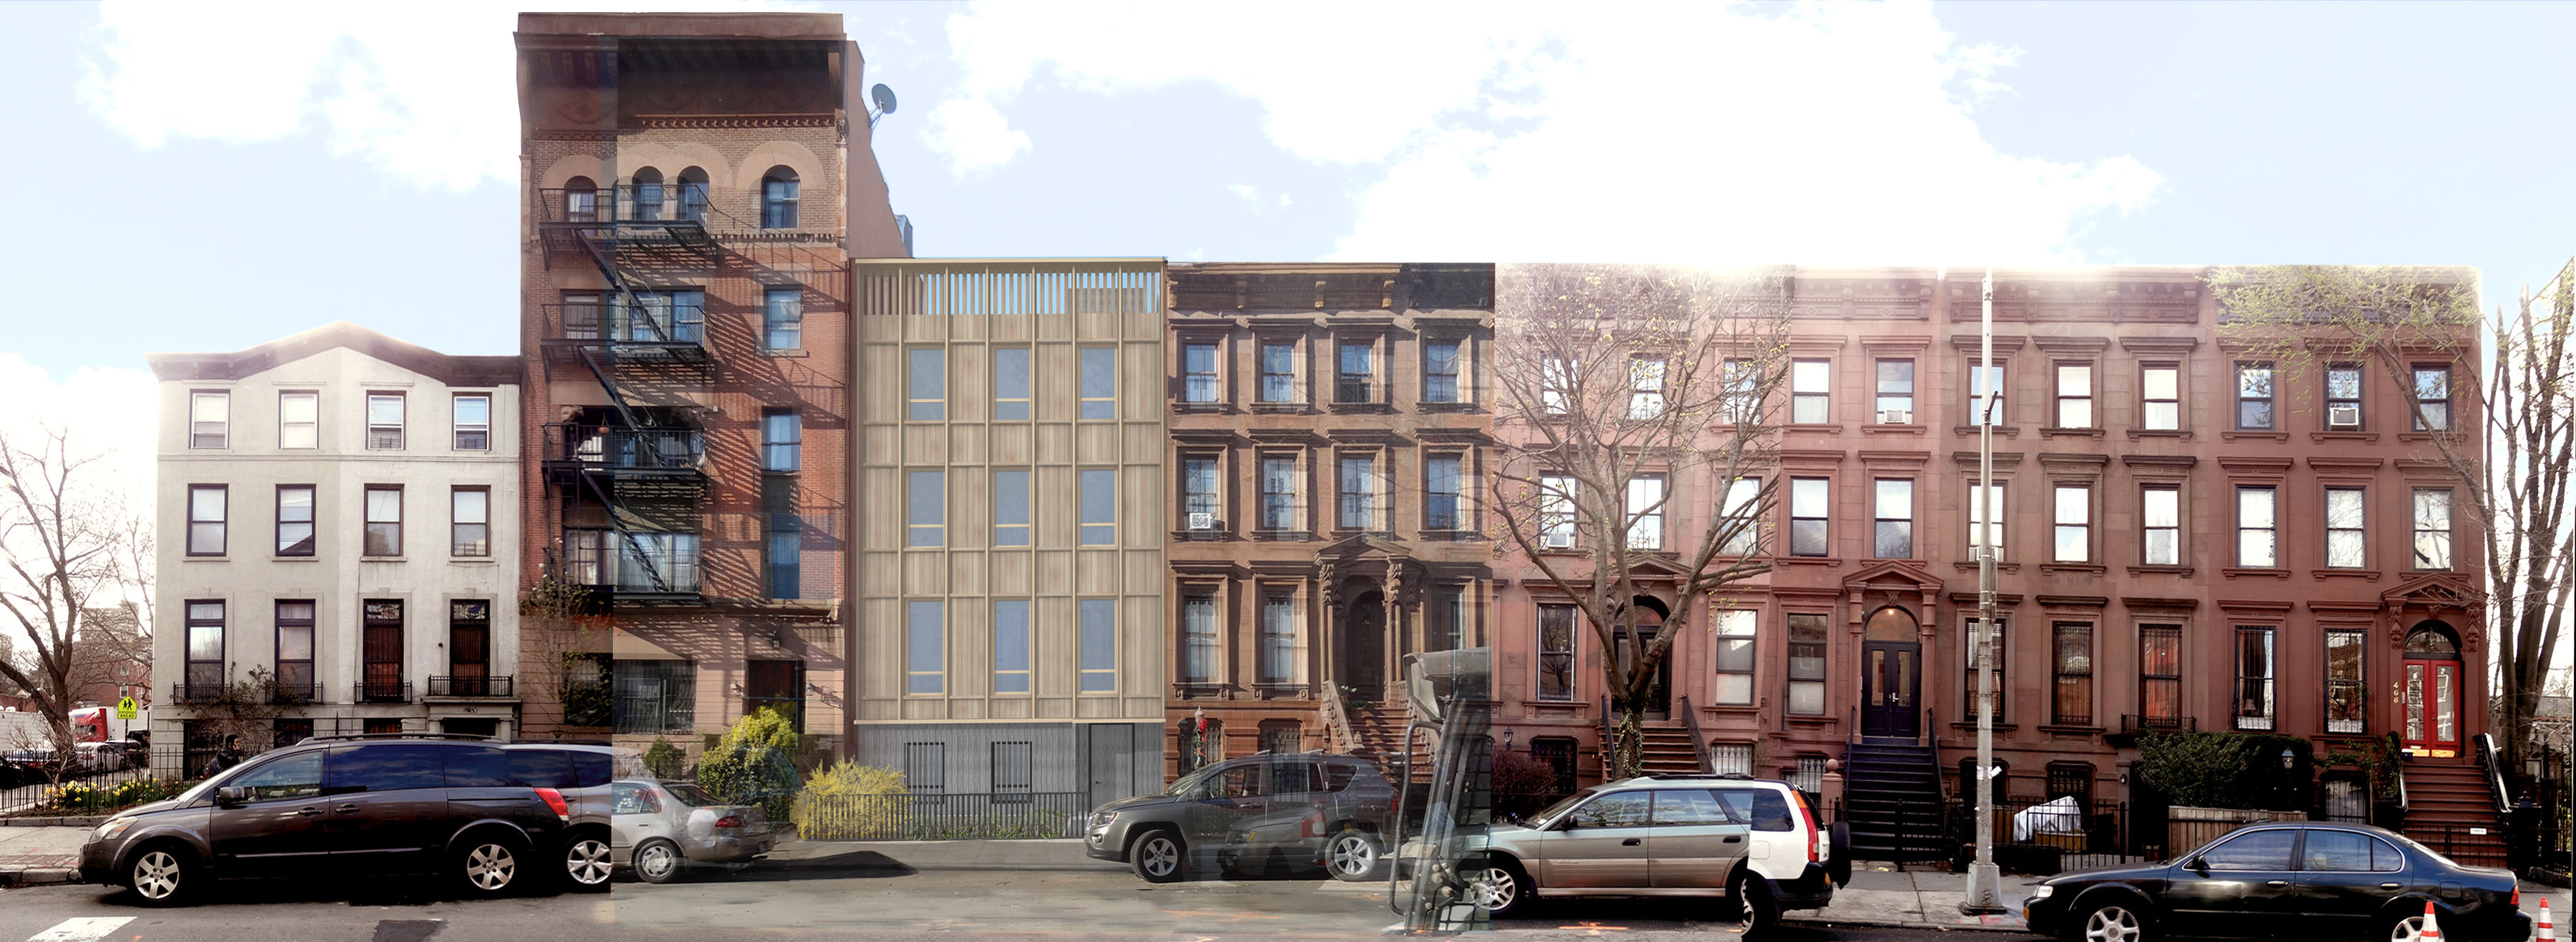 Updated design for 476 Washington Avenue